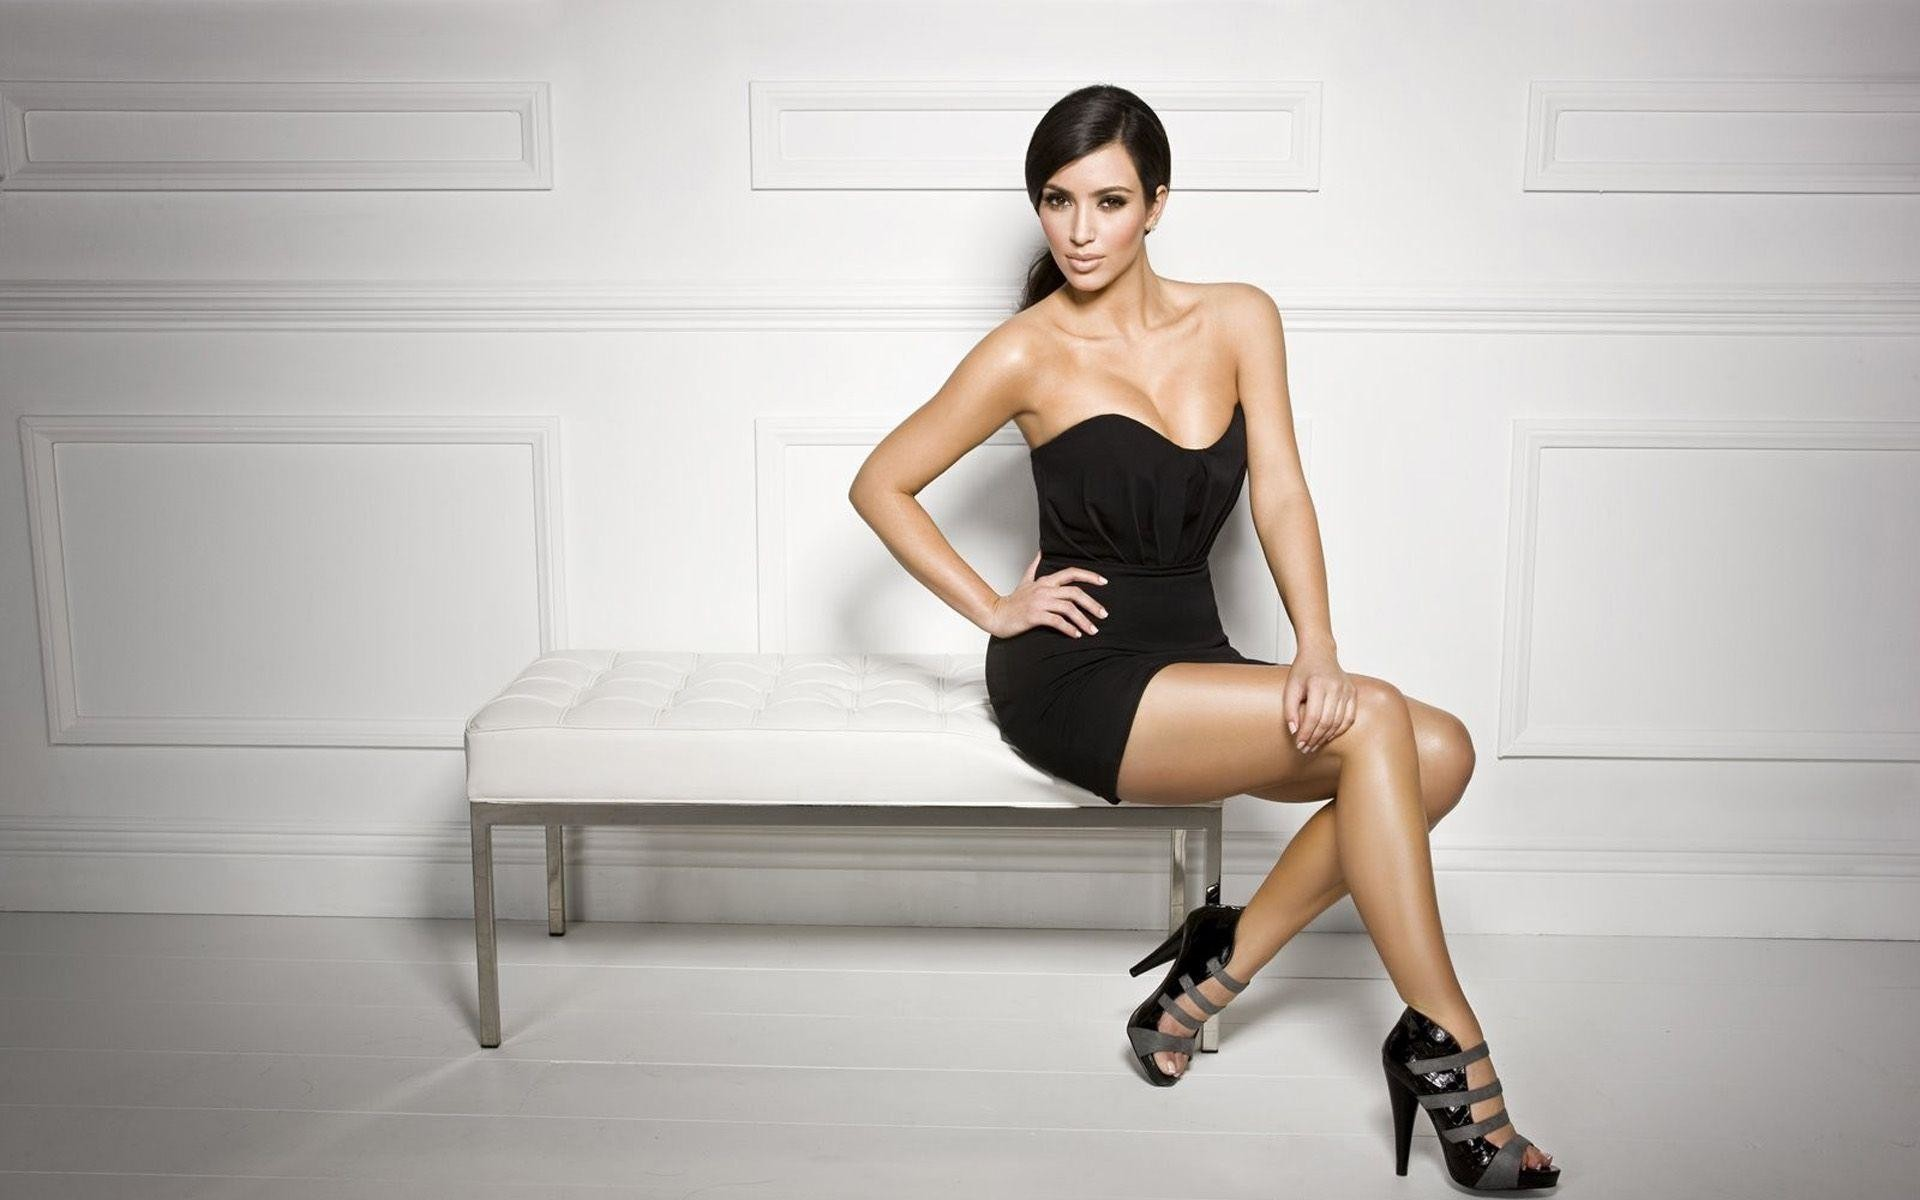 1920x1200 Kim Kardashian Backgrounds Download | Wallpapers, Backgrounds .